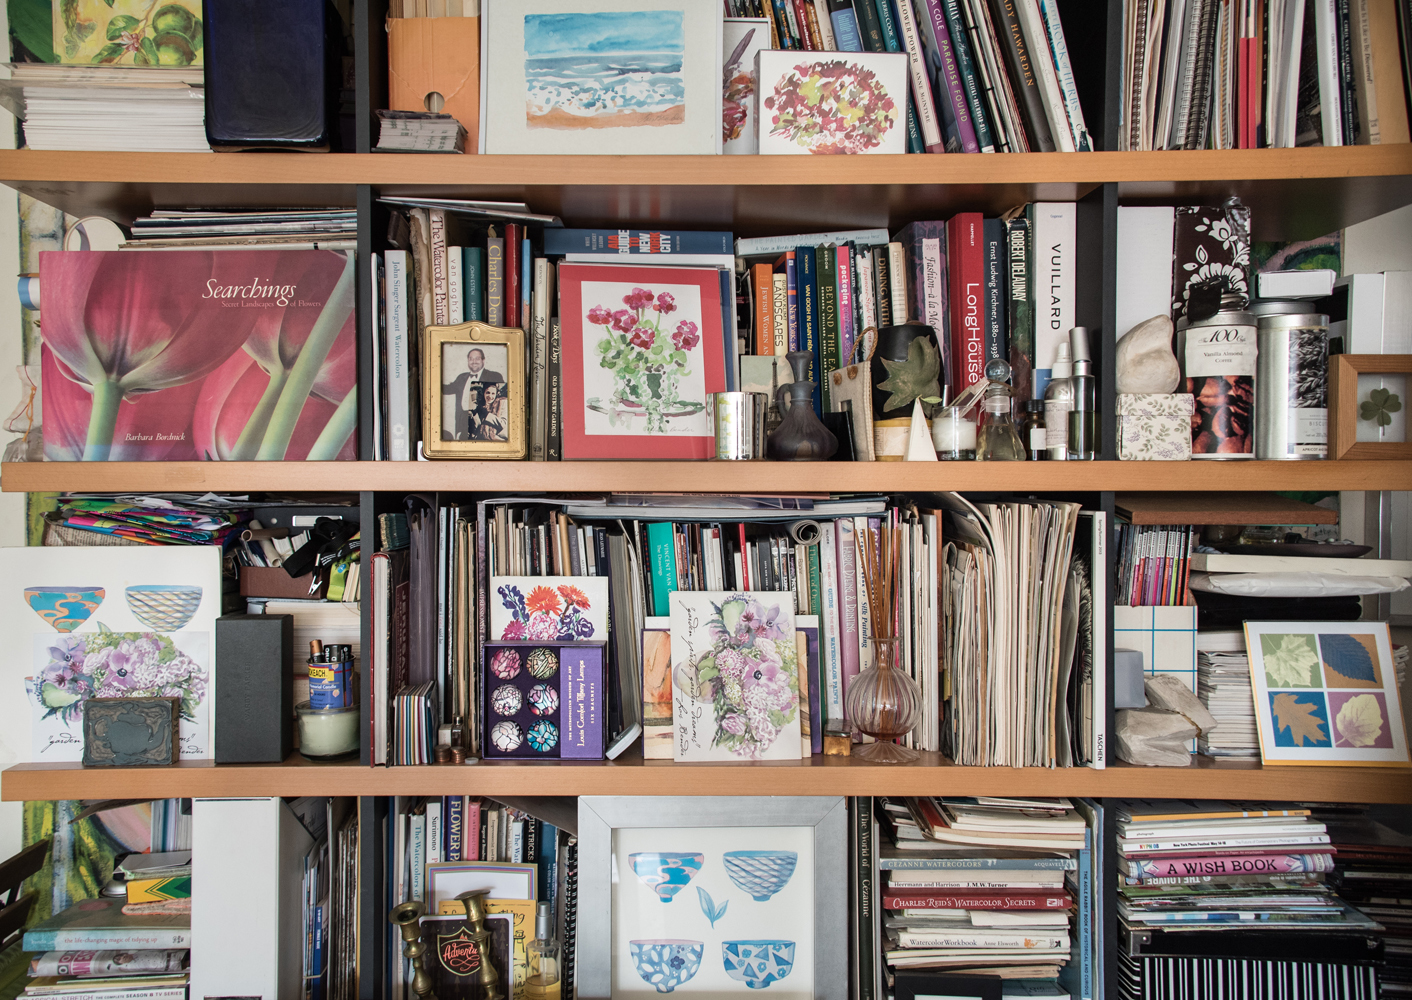 View Image Details Inspiration Bookcase of treasured books, mementos, talismans and memories....